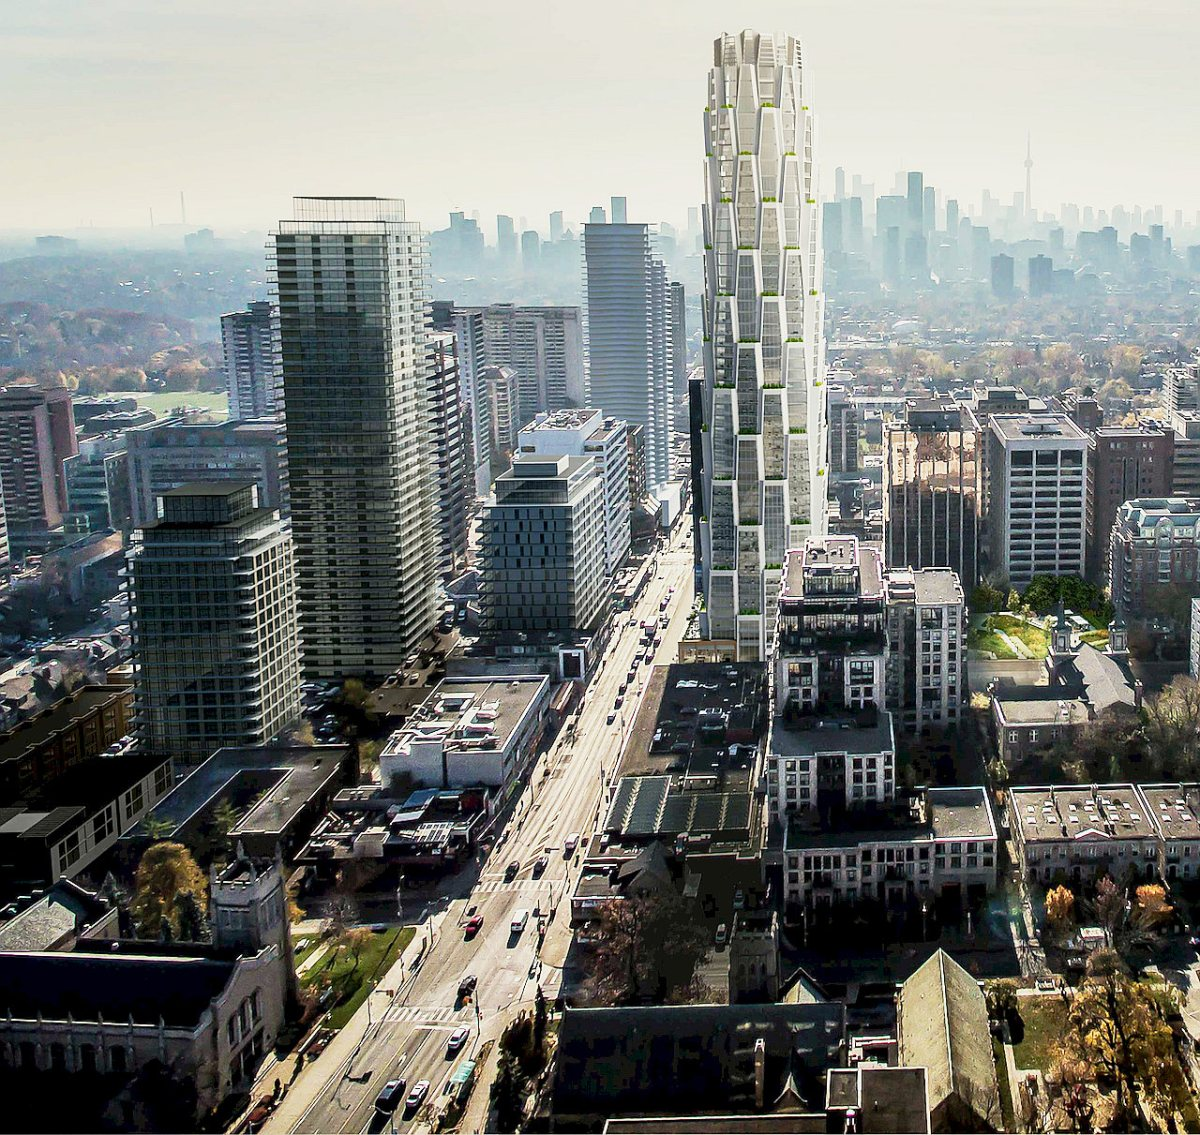 Honeycomb tower for Yonge and St. Clair cut by four floors - The South Bayview Bulldog